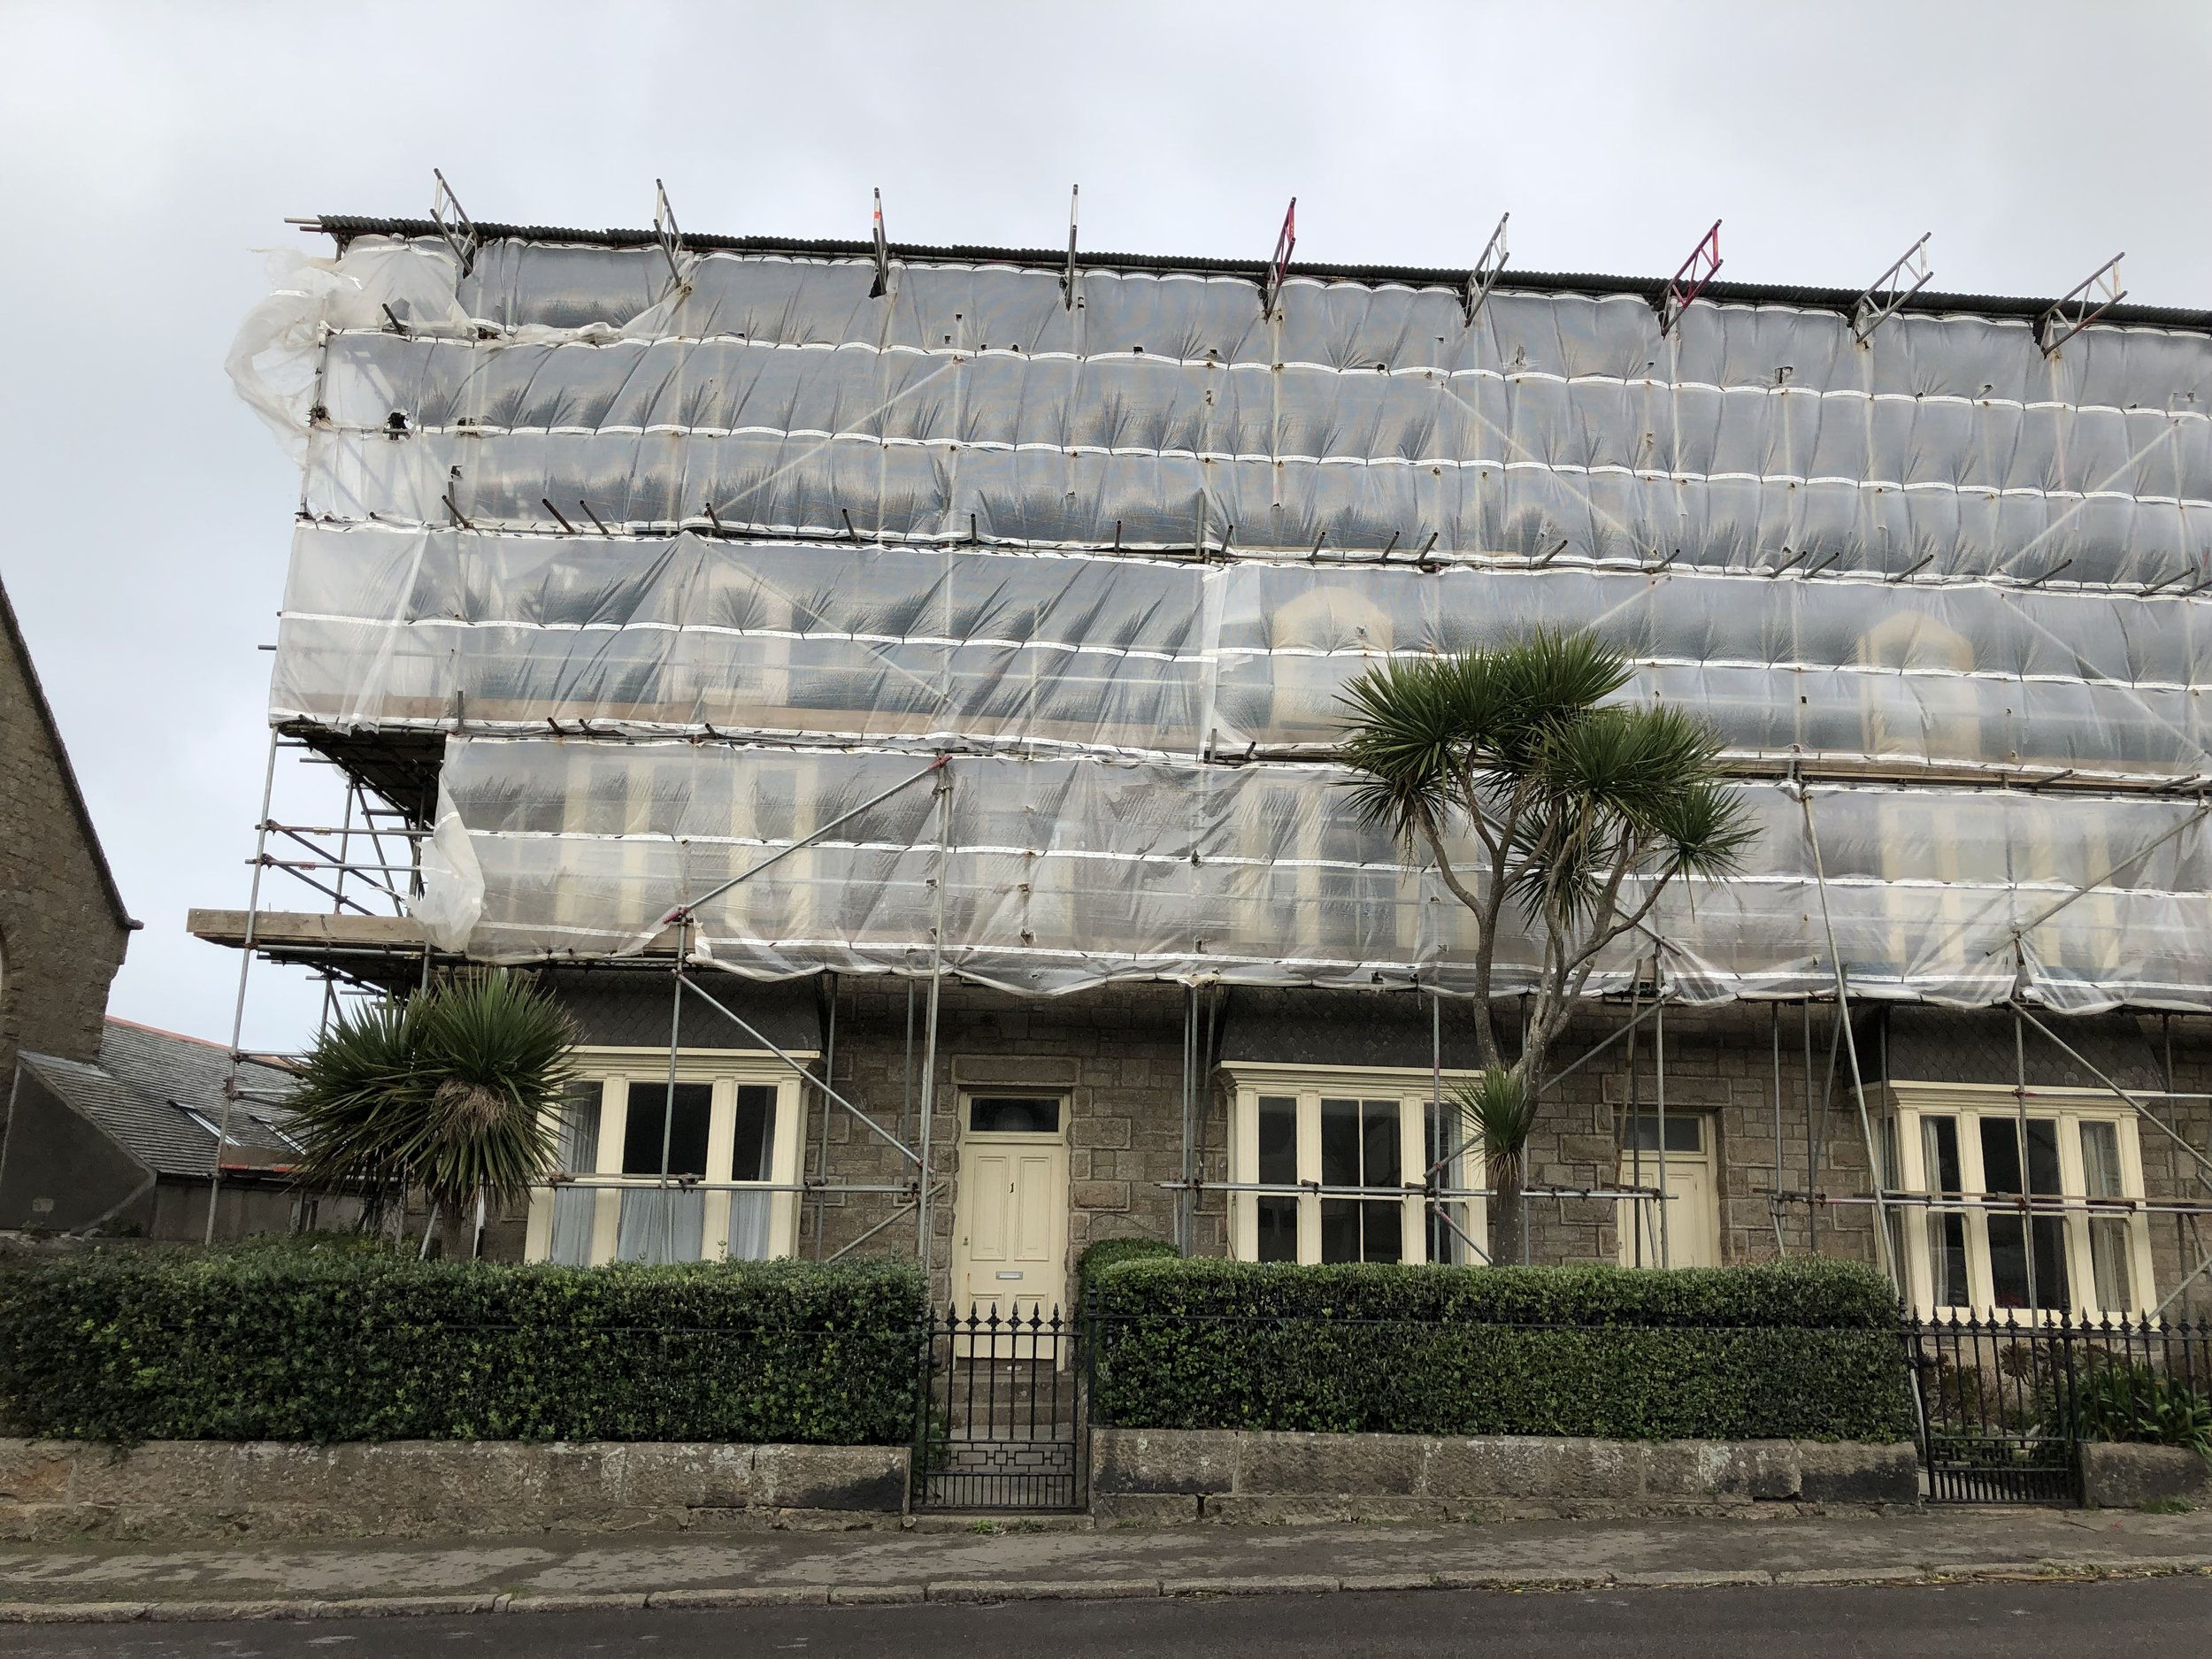 Springfield Court, a row of late Victorian terraced houses by St Mary's Hall Hotel, is currently having a new roof installed.